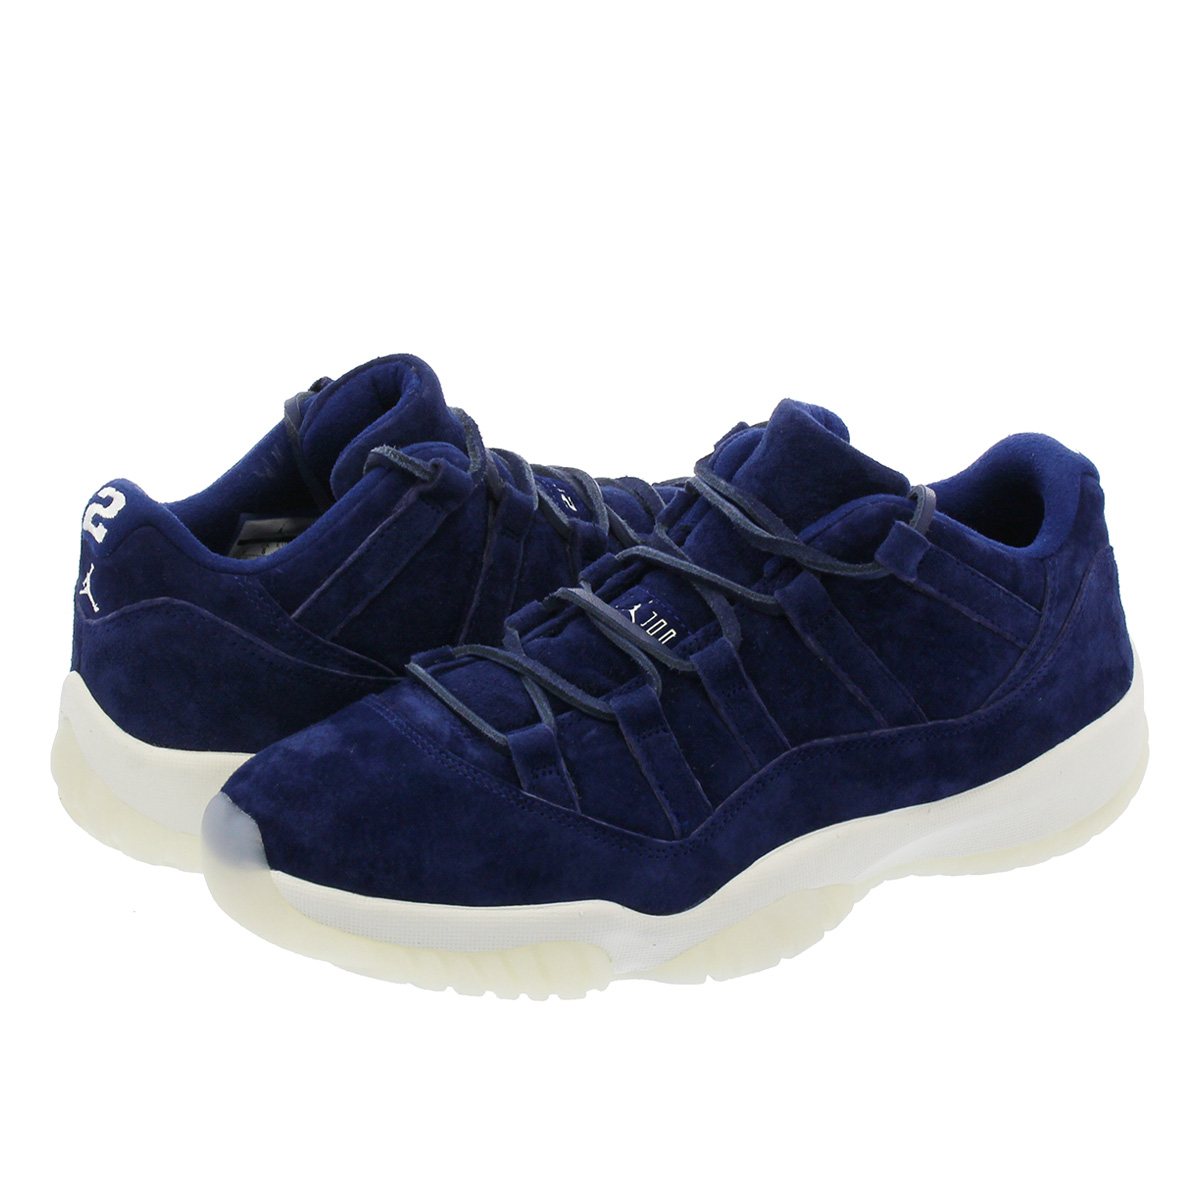 4e1c3c560d5 NIKE AIR JORDAN 11 RETRO LOW Nike Jordan 11 nostalgic low BINARY BLUE SAIL BINARY  BLUE av2187-441